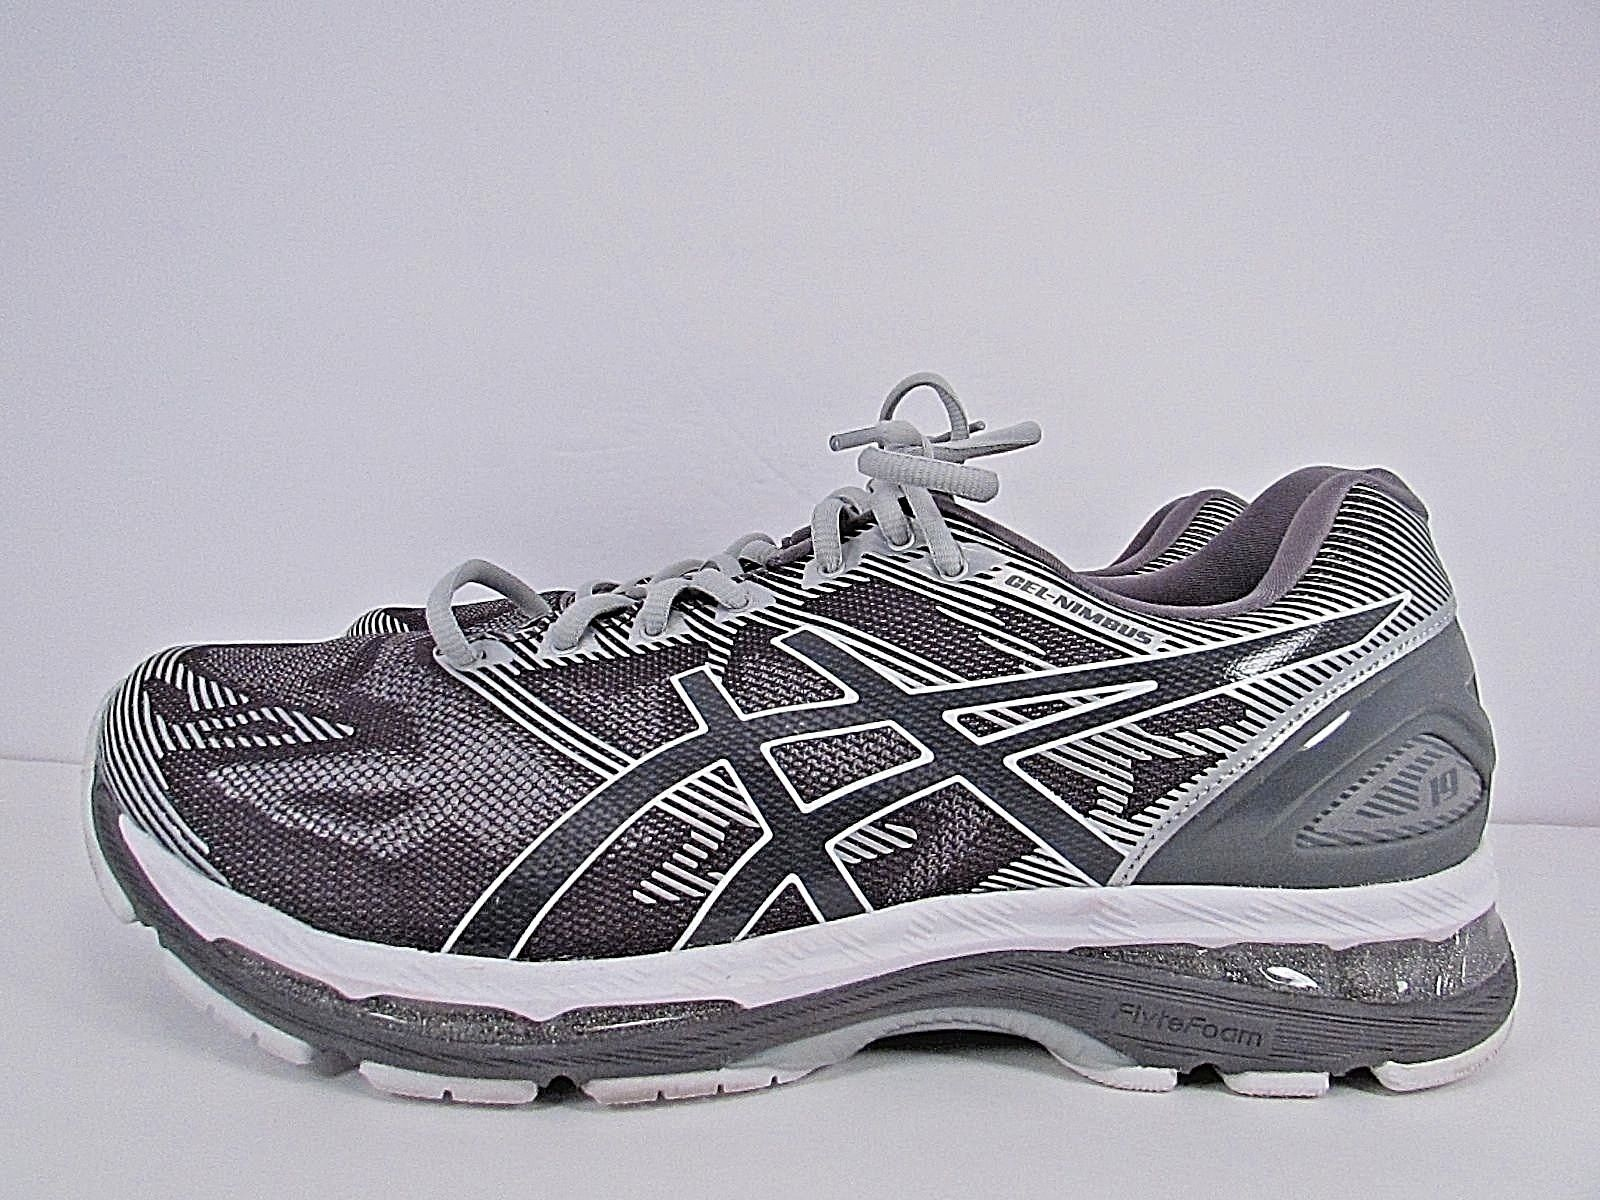 huge selection of a3831 76176 MENS ASICS GEL NIMBUS 19 SIZE 12 (4E) EXTRA WIDE ! WORN ...